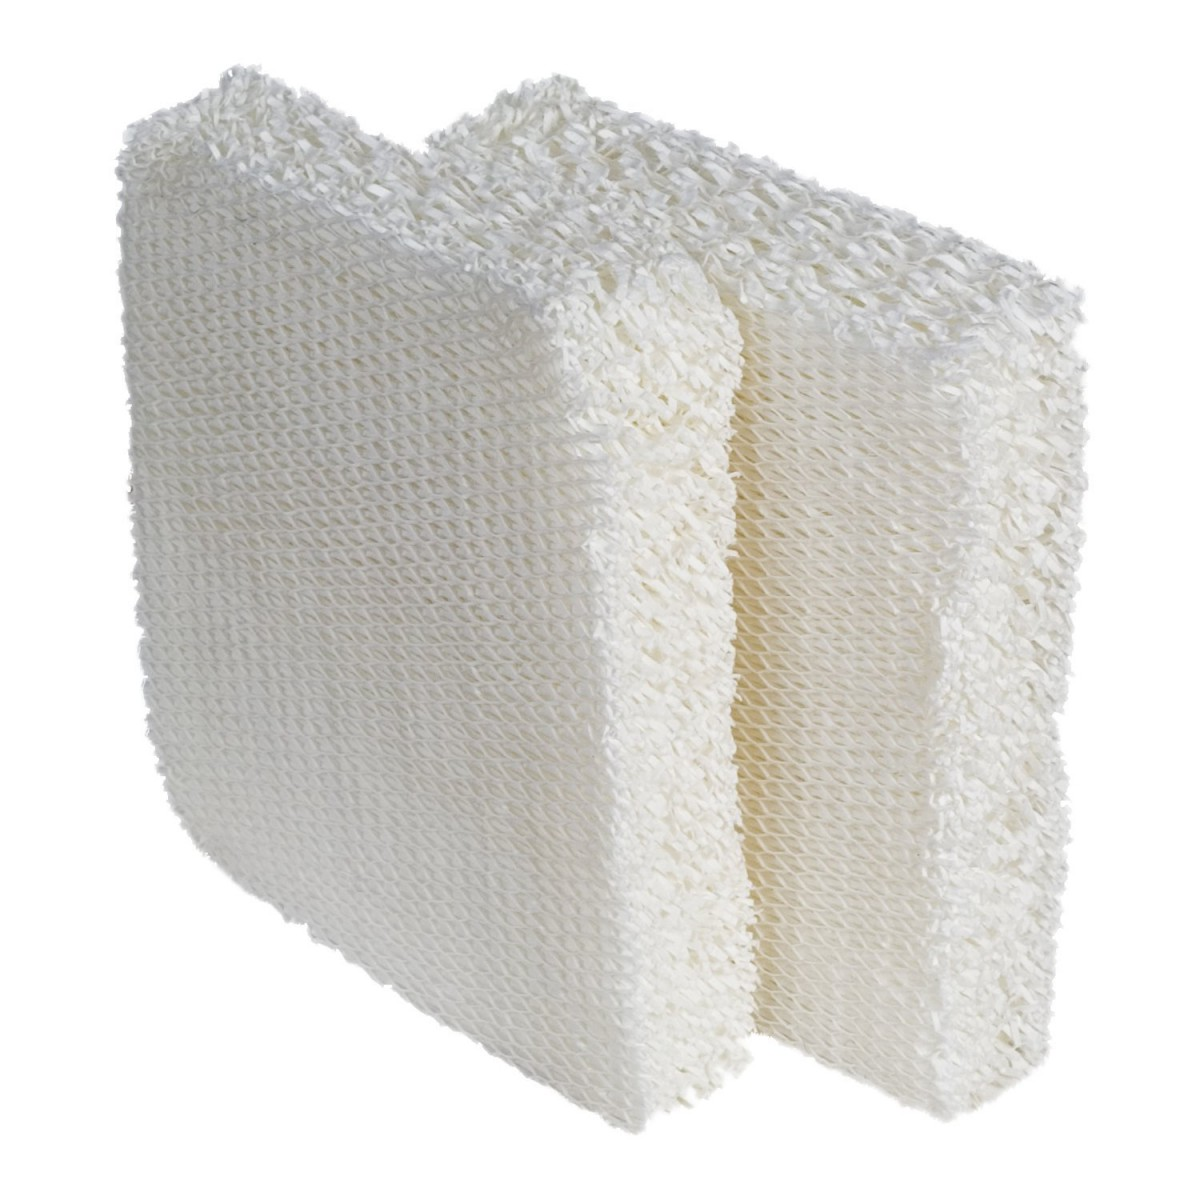 Home > MD1 1002 Vornado Humidifier Replacement Wick Filter #726A59